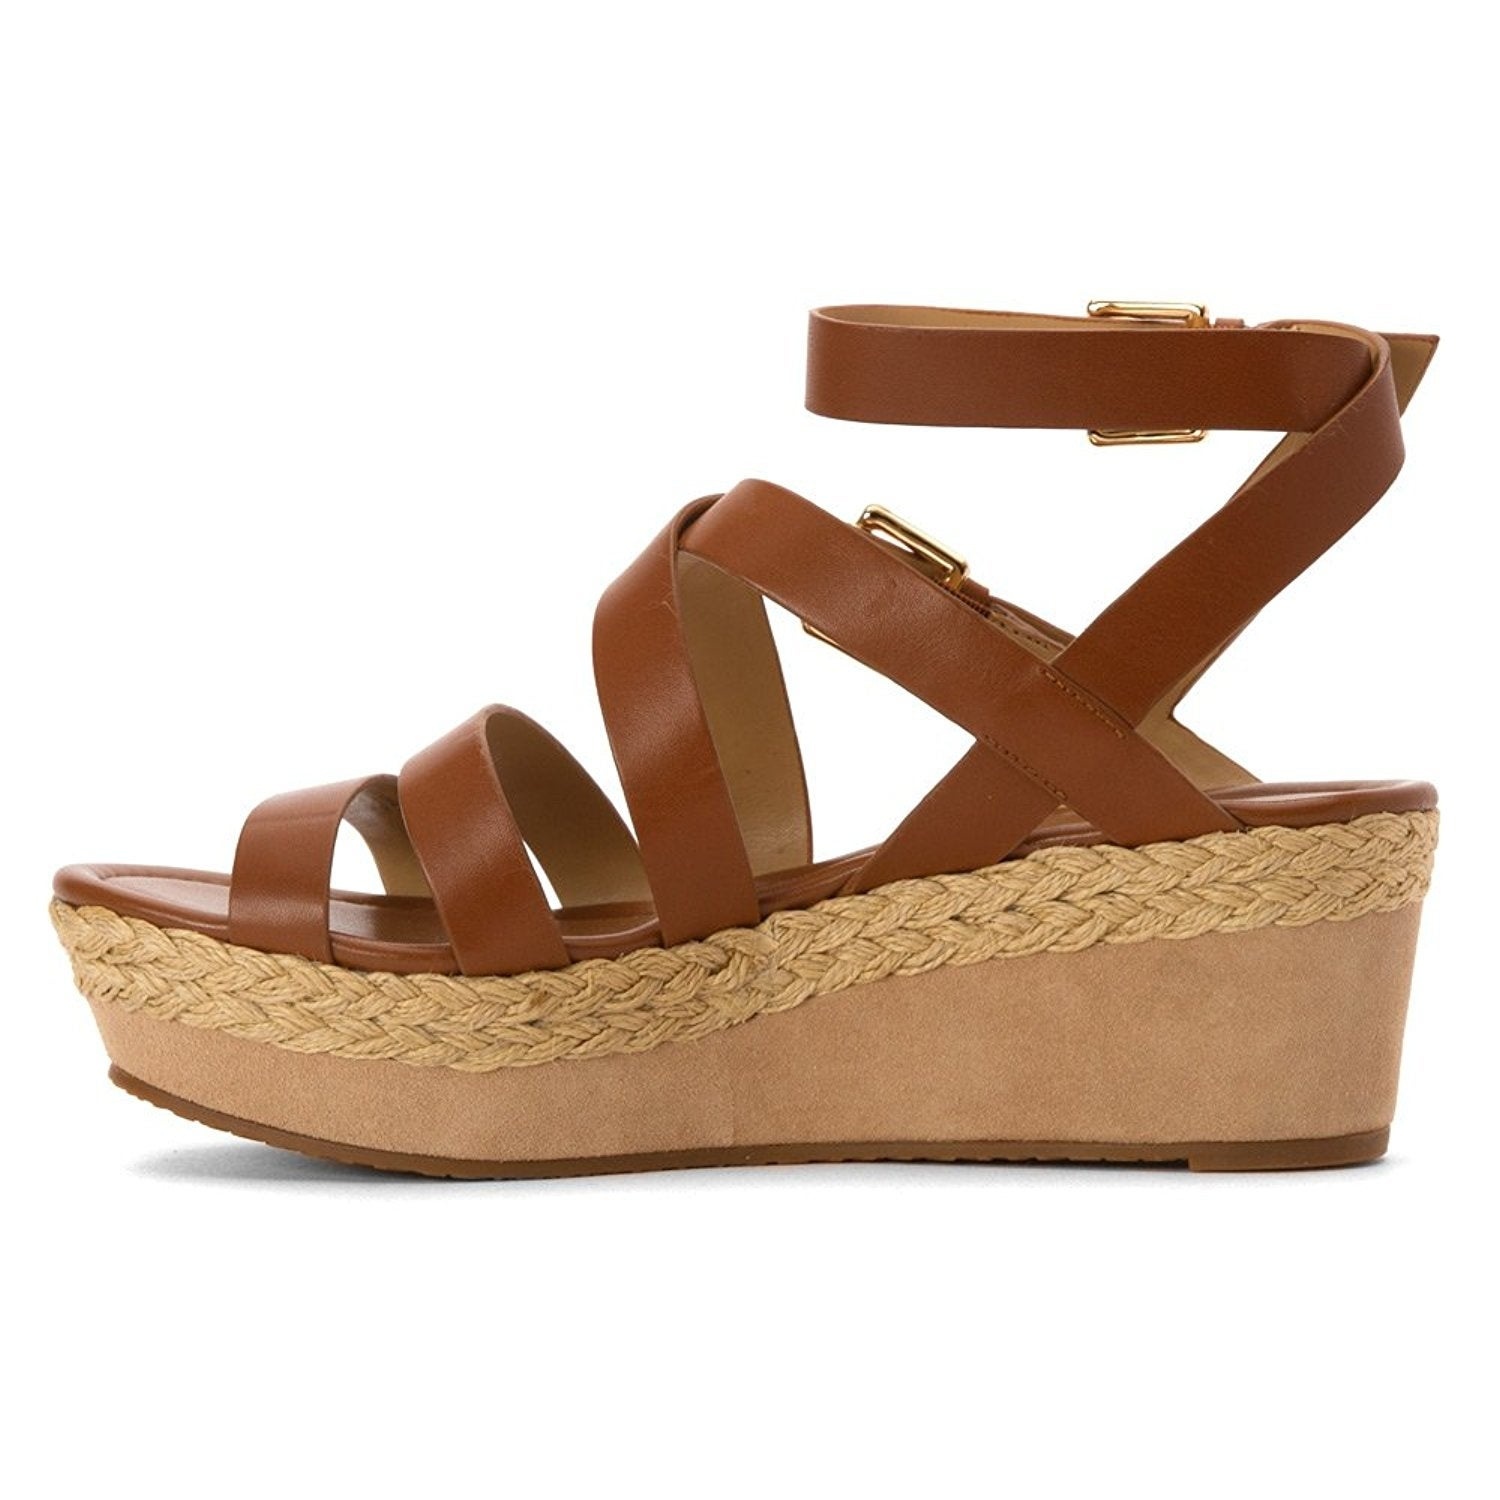 434a8806b25 Shop MICHAEL Michael Kors Womens Jocelyn Leather Open Toe Casual Platform  Sandals - Free Shipping Today - Overstock - 19848336